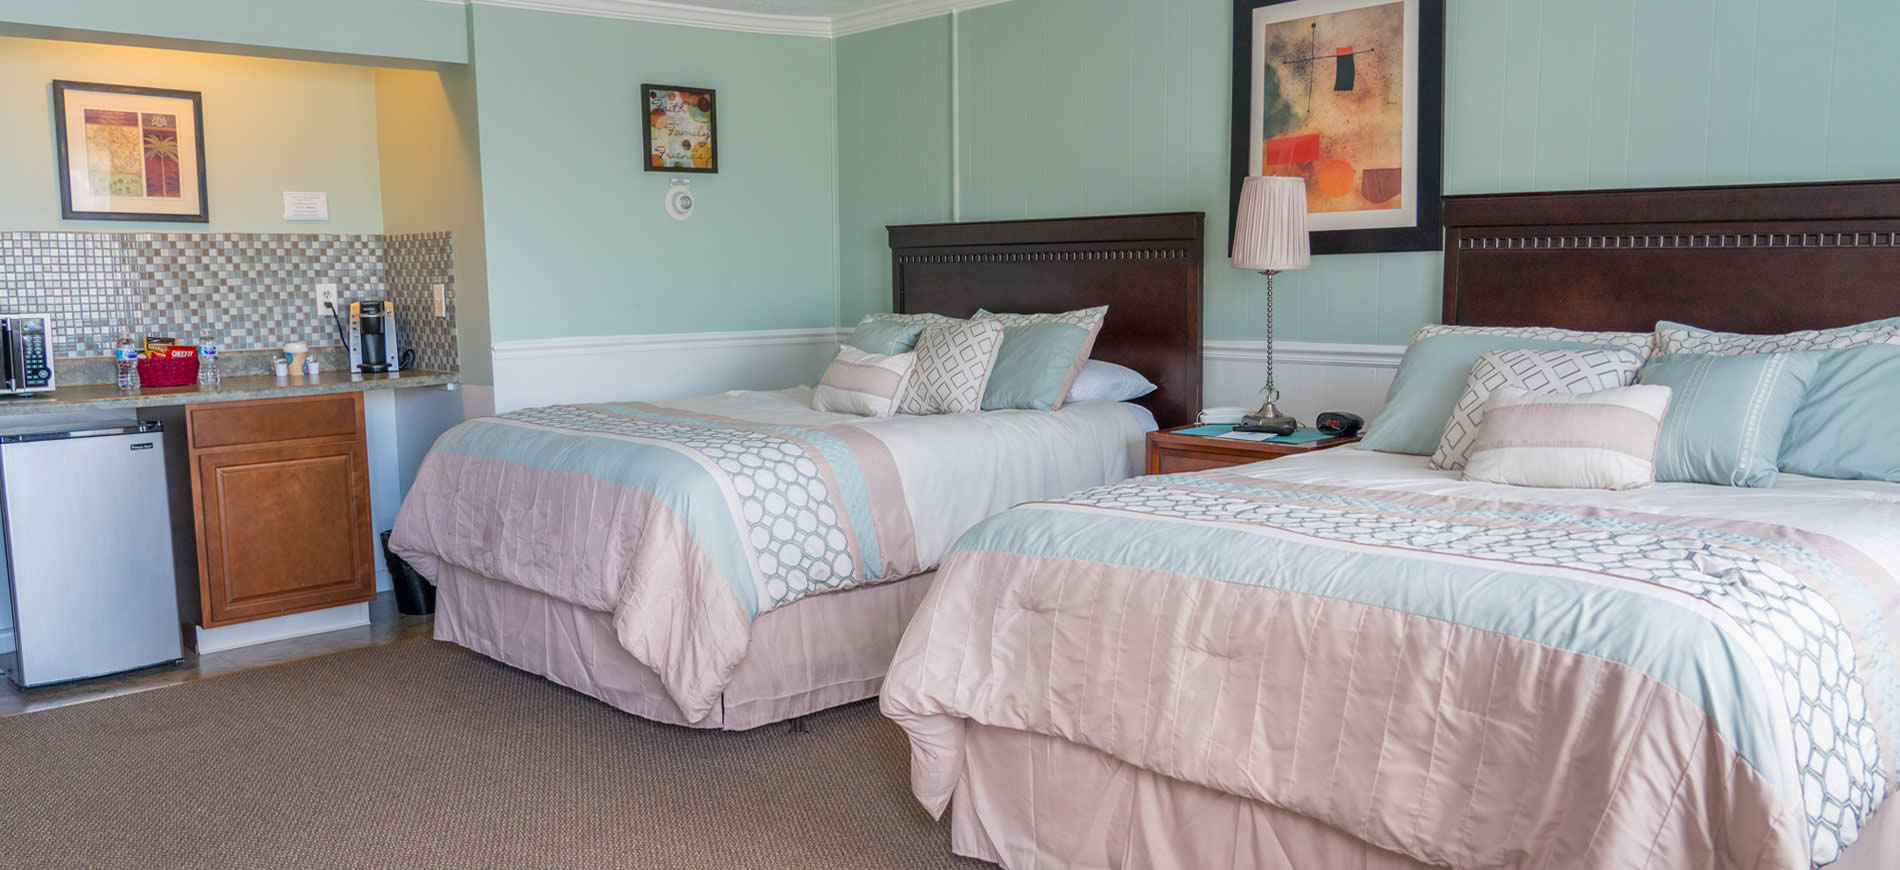 nantasket beach hotel - double beds